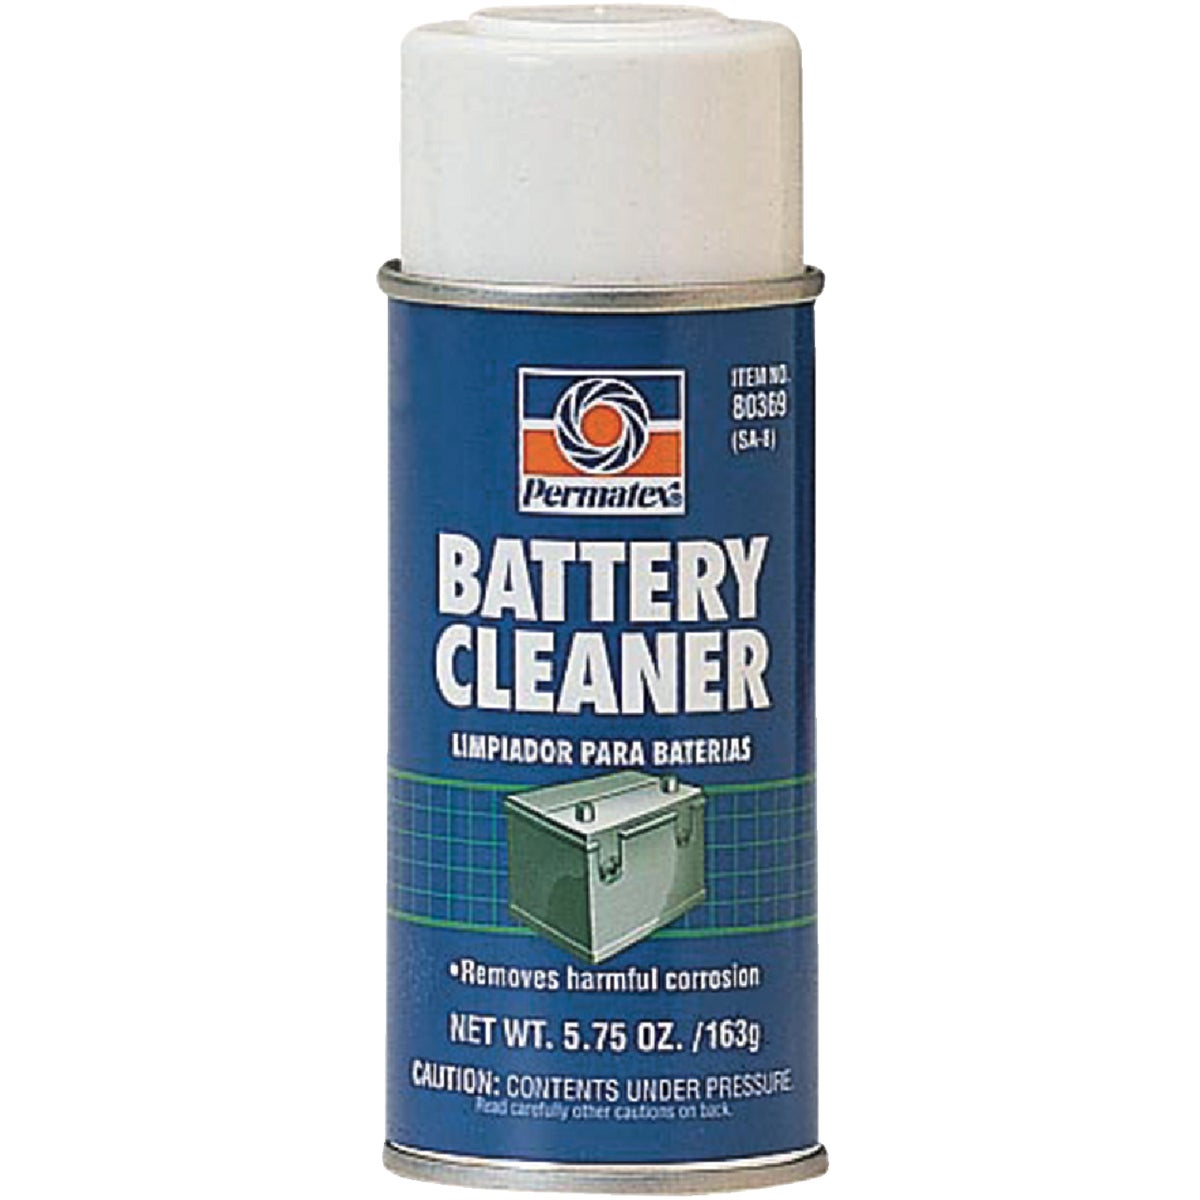 5.75OZ BATTERY CLEANER - 80369 by Itw Global Brands